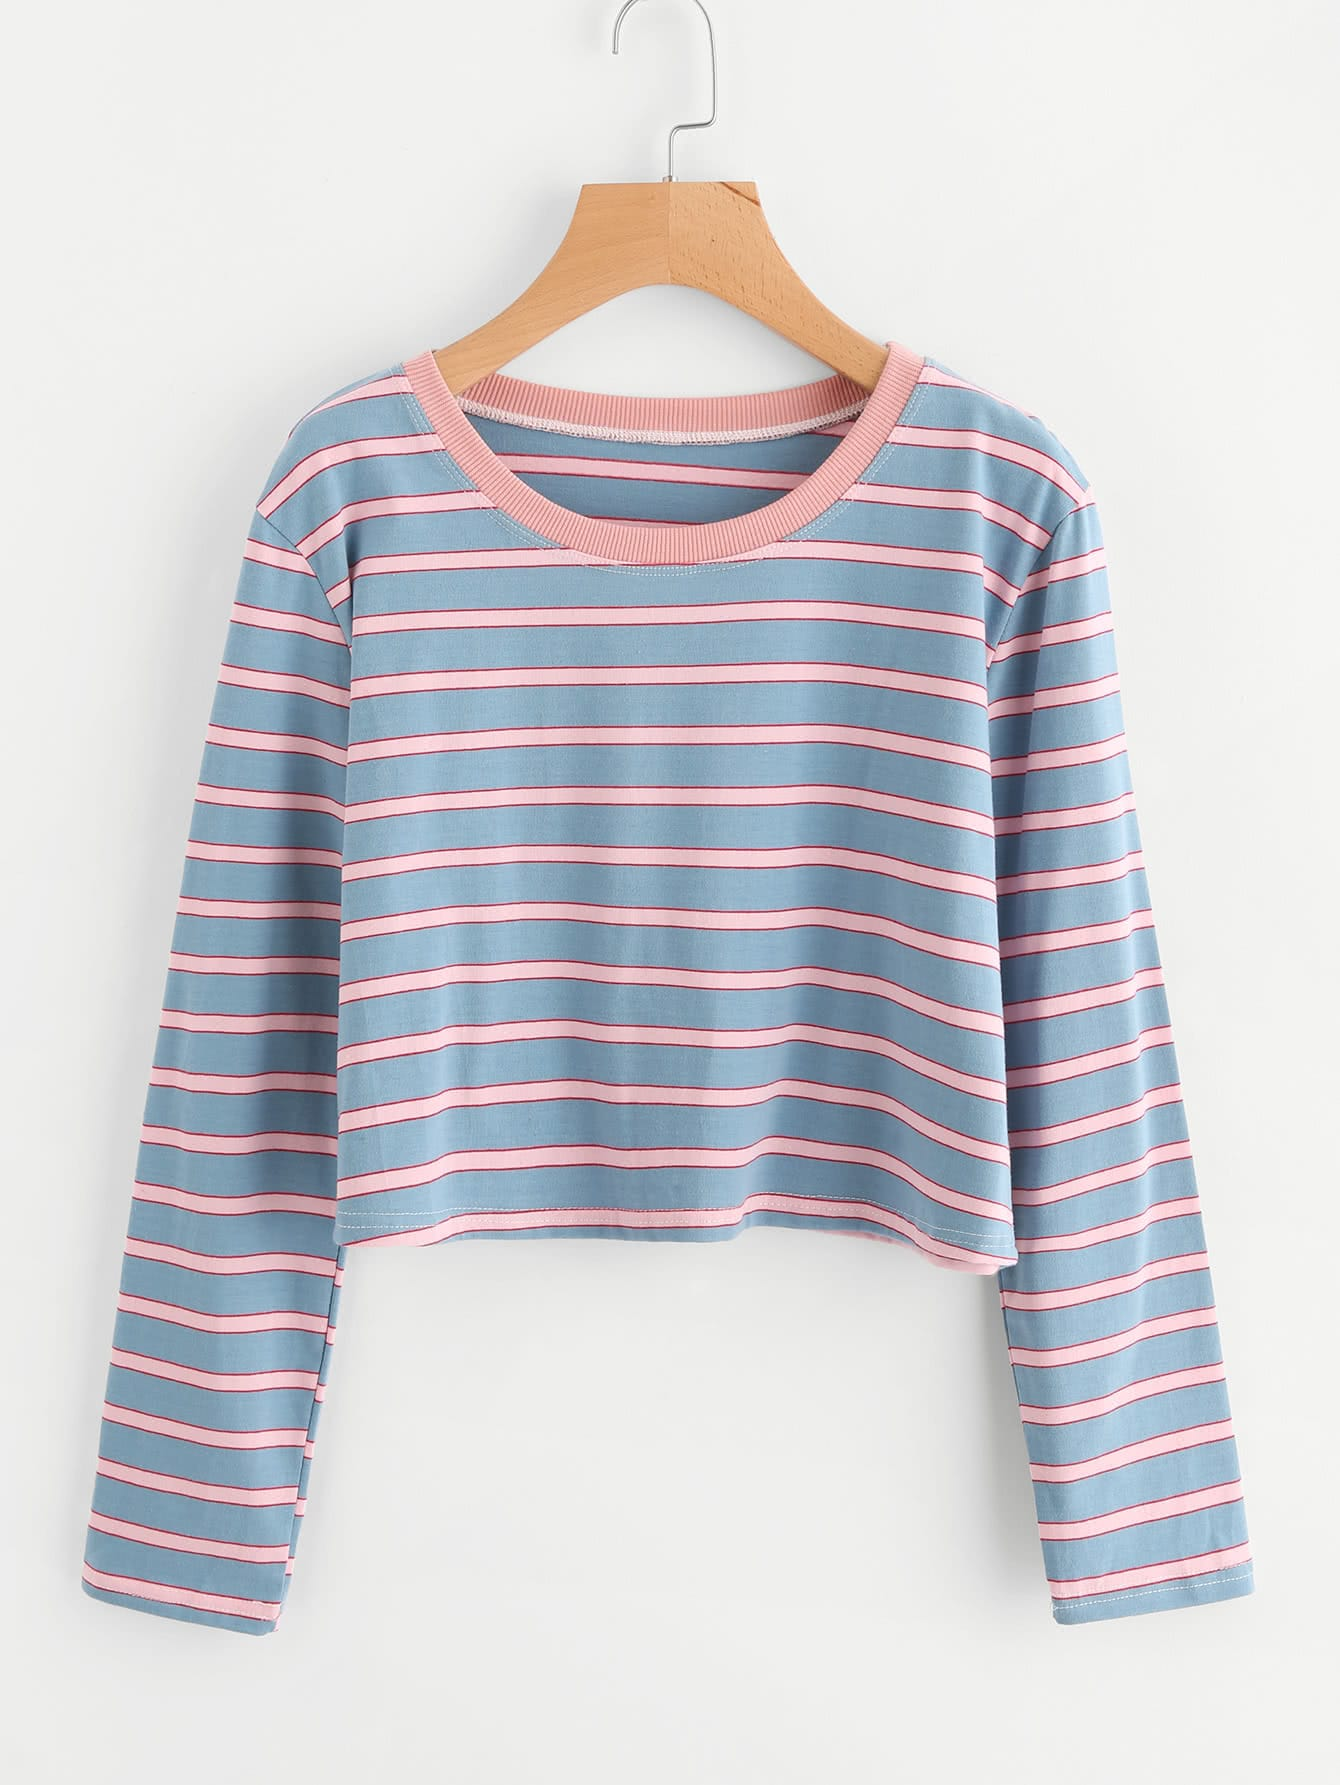 5765a693cefa Contrast Neck Pizza Print Striped T-shirt - Latest Fashion & In ...